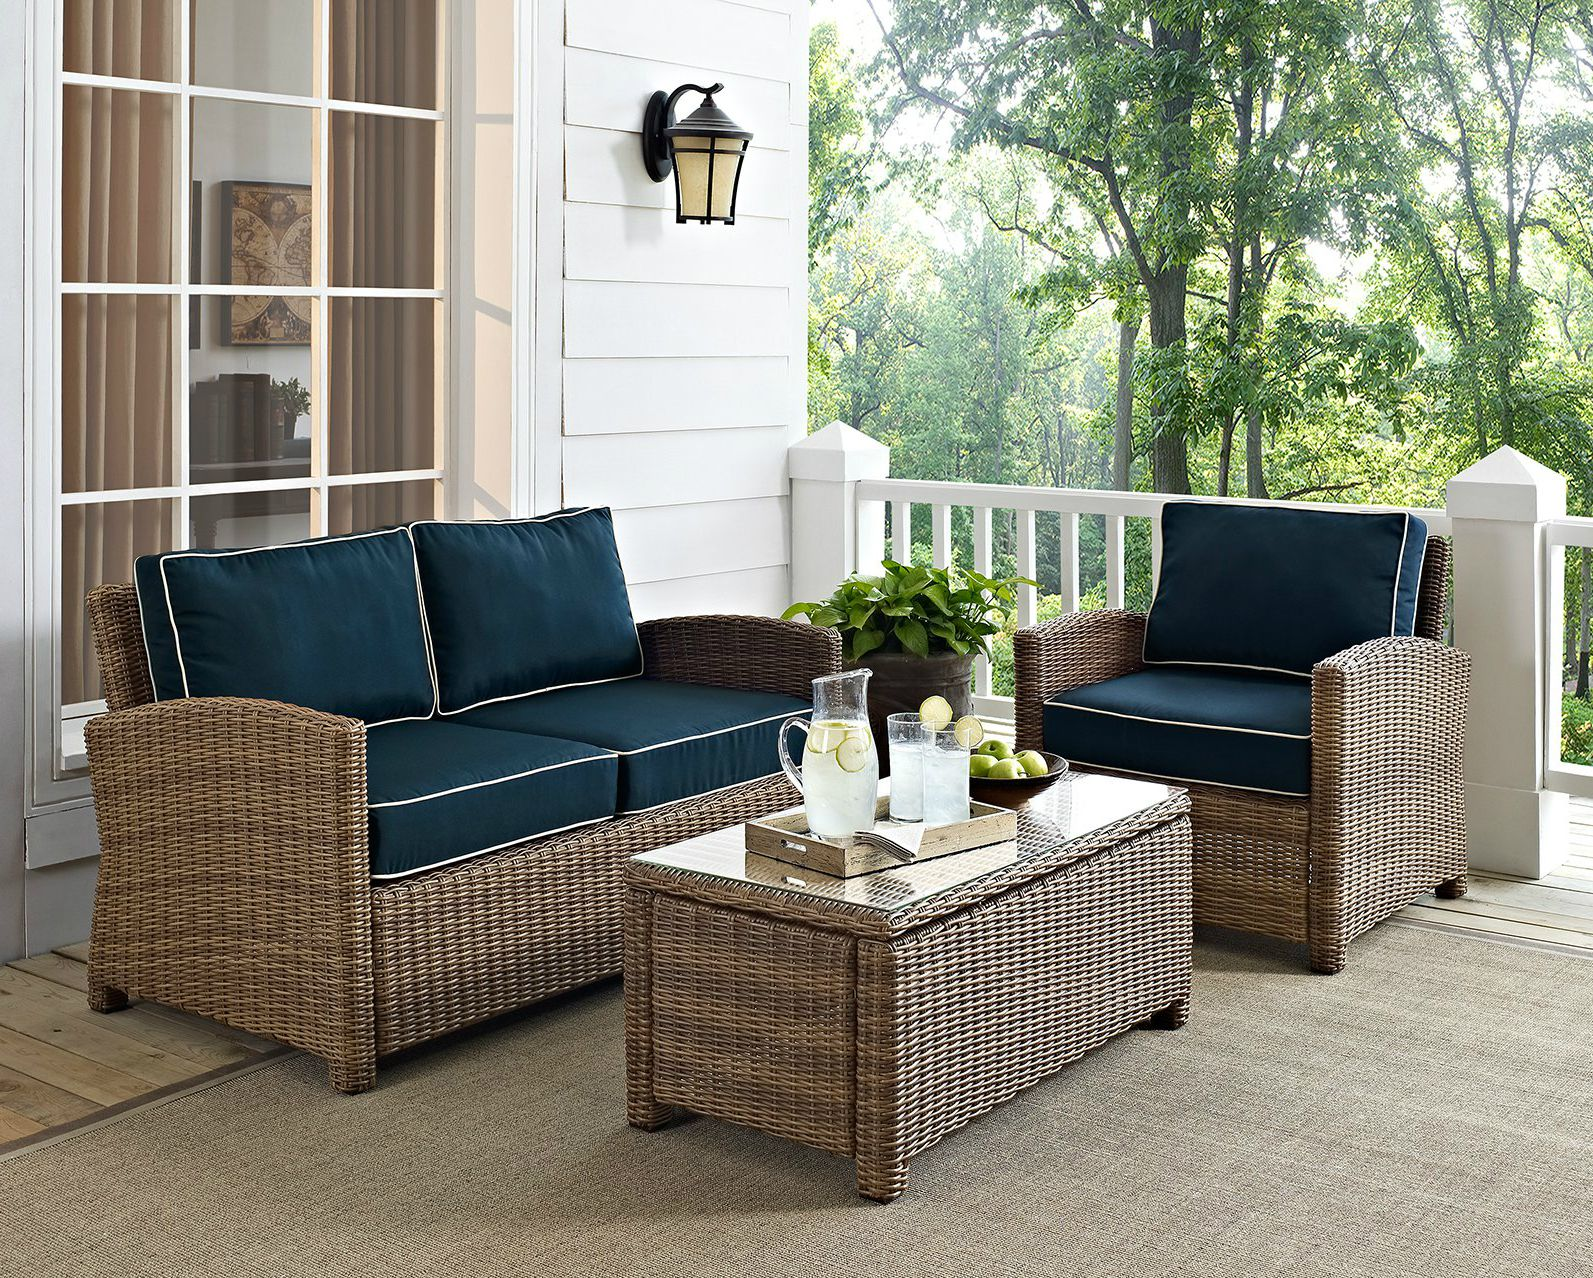 The 10 Best Places To Buy Patio Furniture